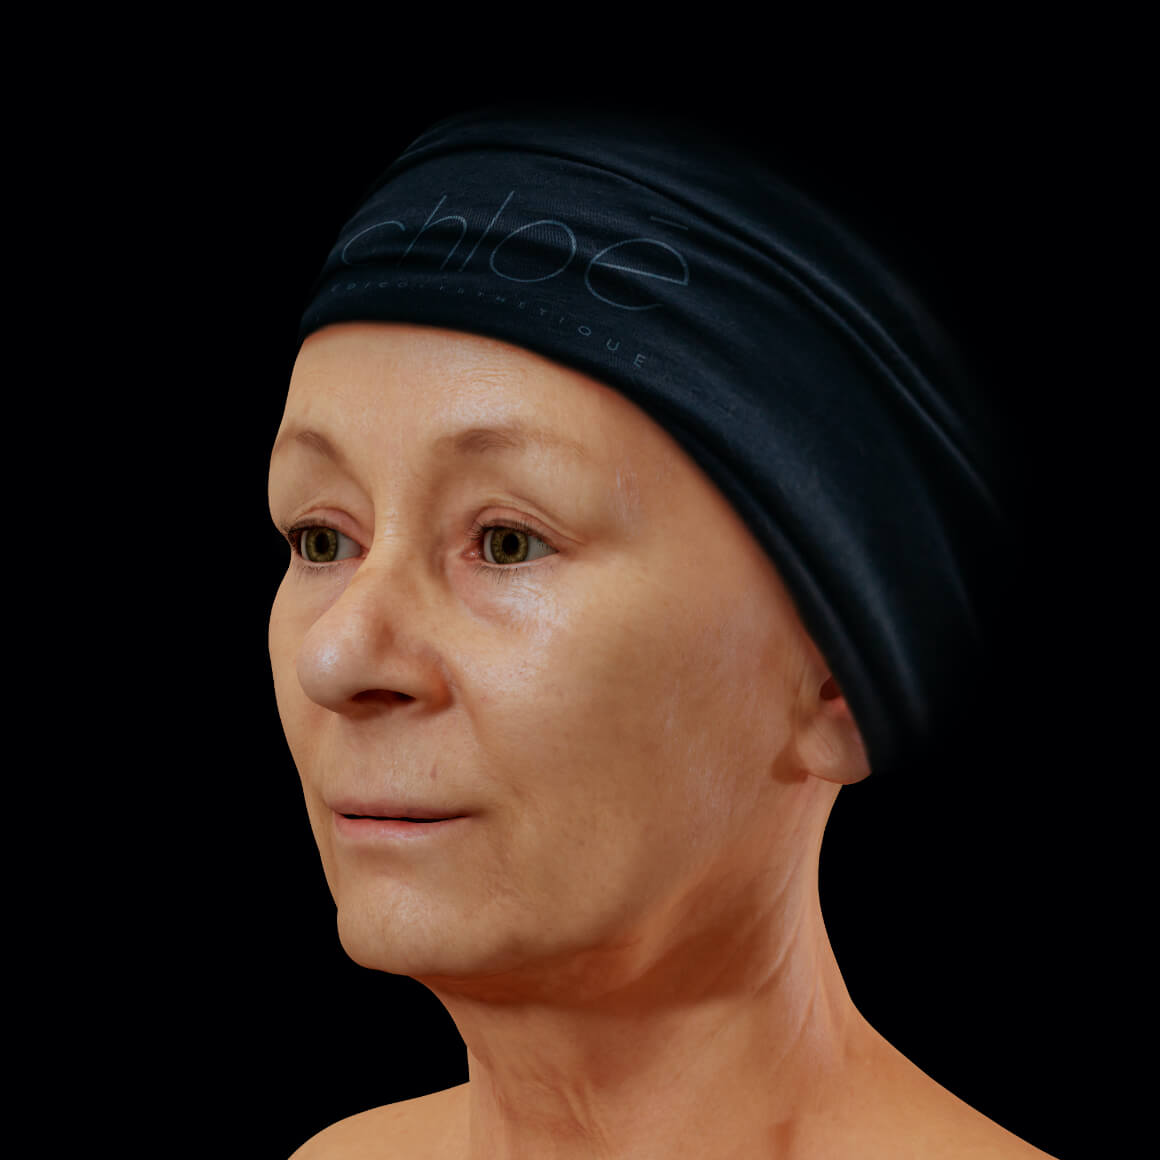 Woman, patient at Clinique Chloé, positioned at an angle, after mesotherapy treatments for wrinkle reduction